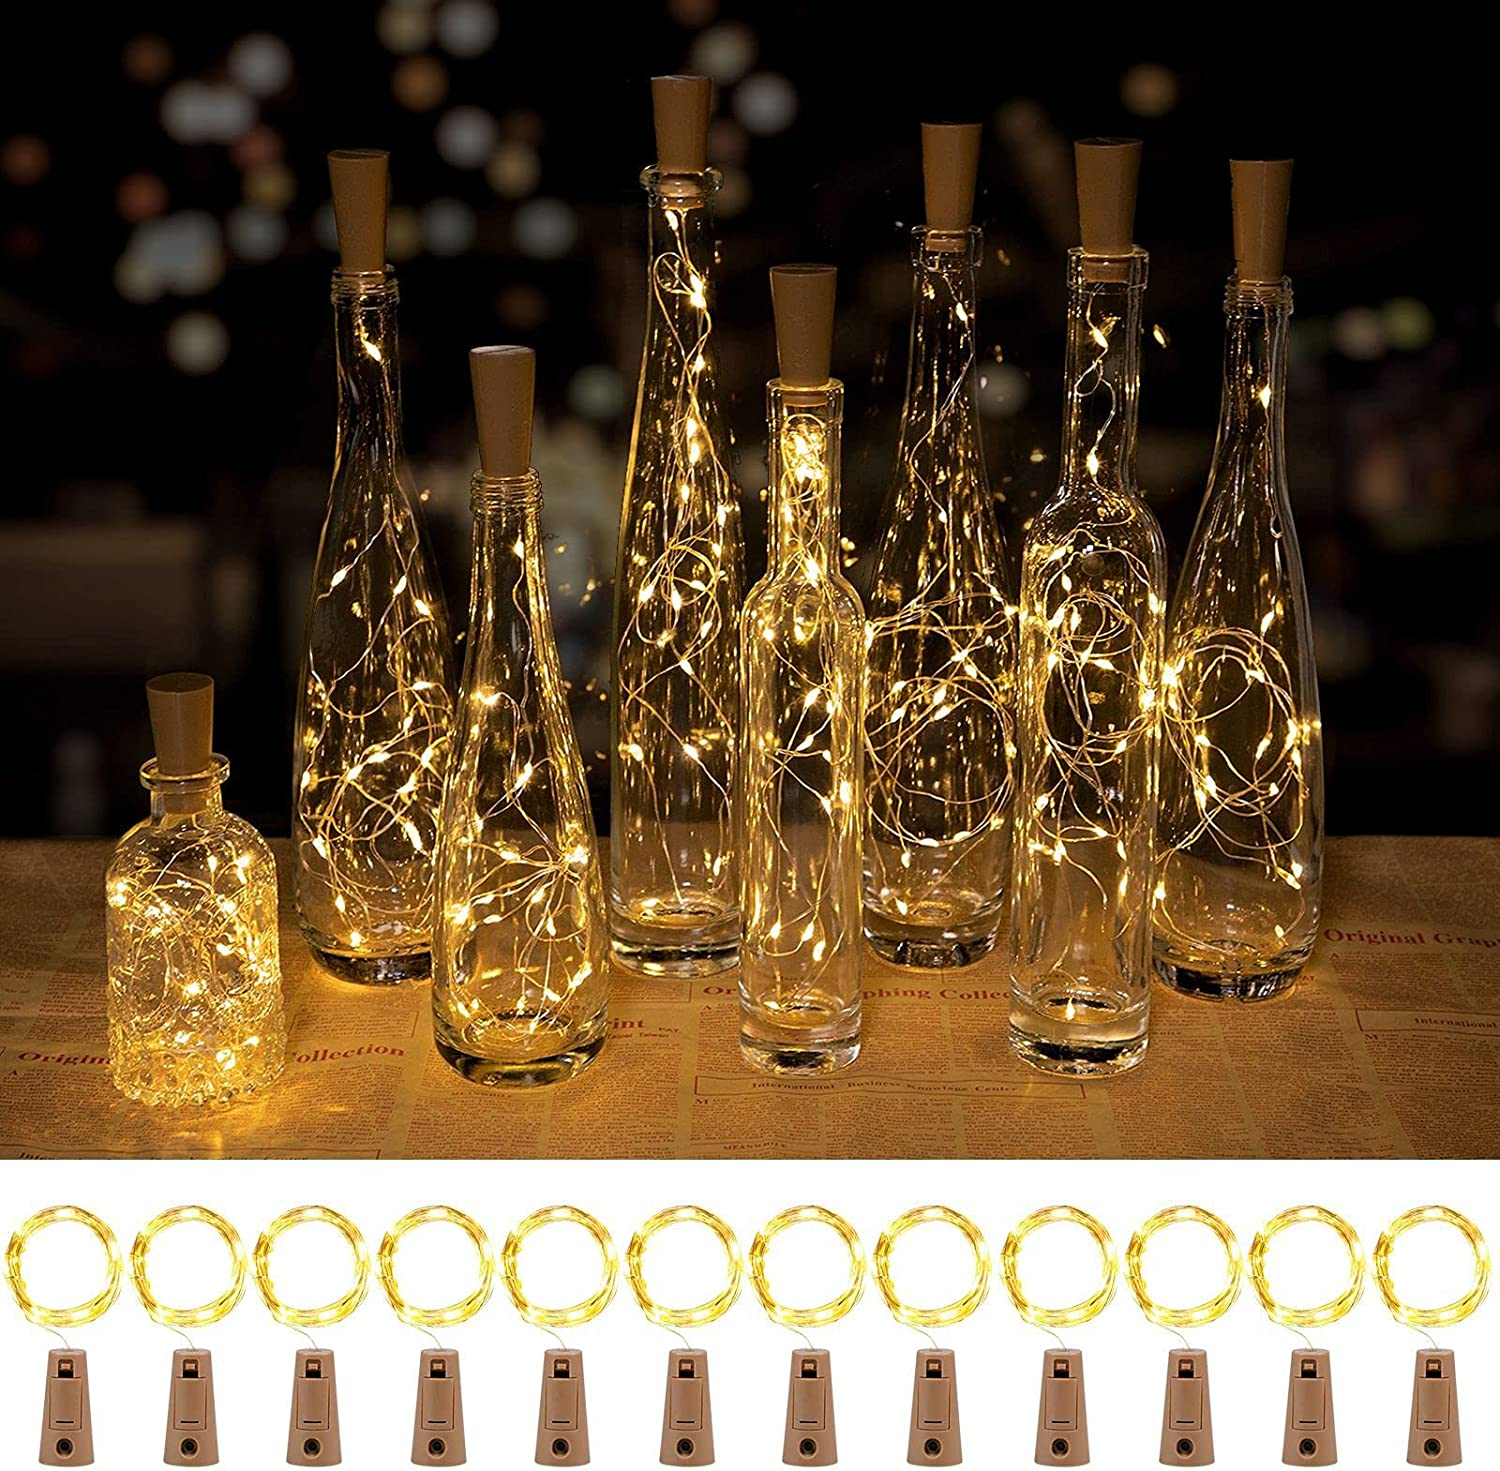 Wine Bottle Lights with Cork, 8 Lighting Modes 12 Pack 20 LED Waterproof Battery Operated Cork Lights, Silver Wire Mini Fairy Lights for Liquor Bottles DIY Party Bar Christmas Holiday Wedding Décor